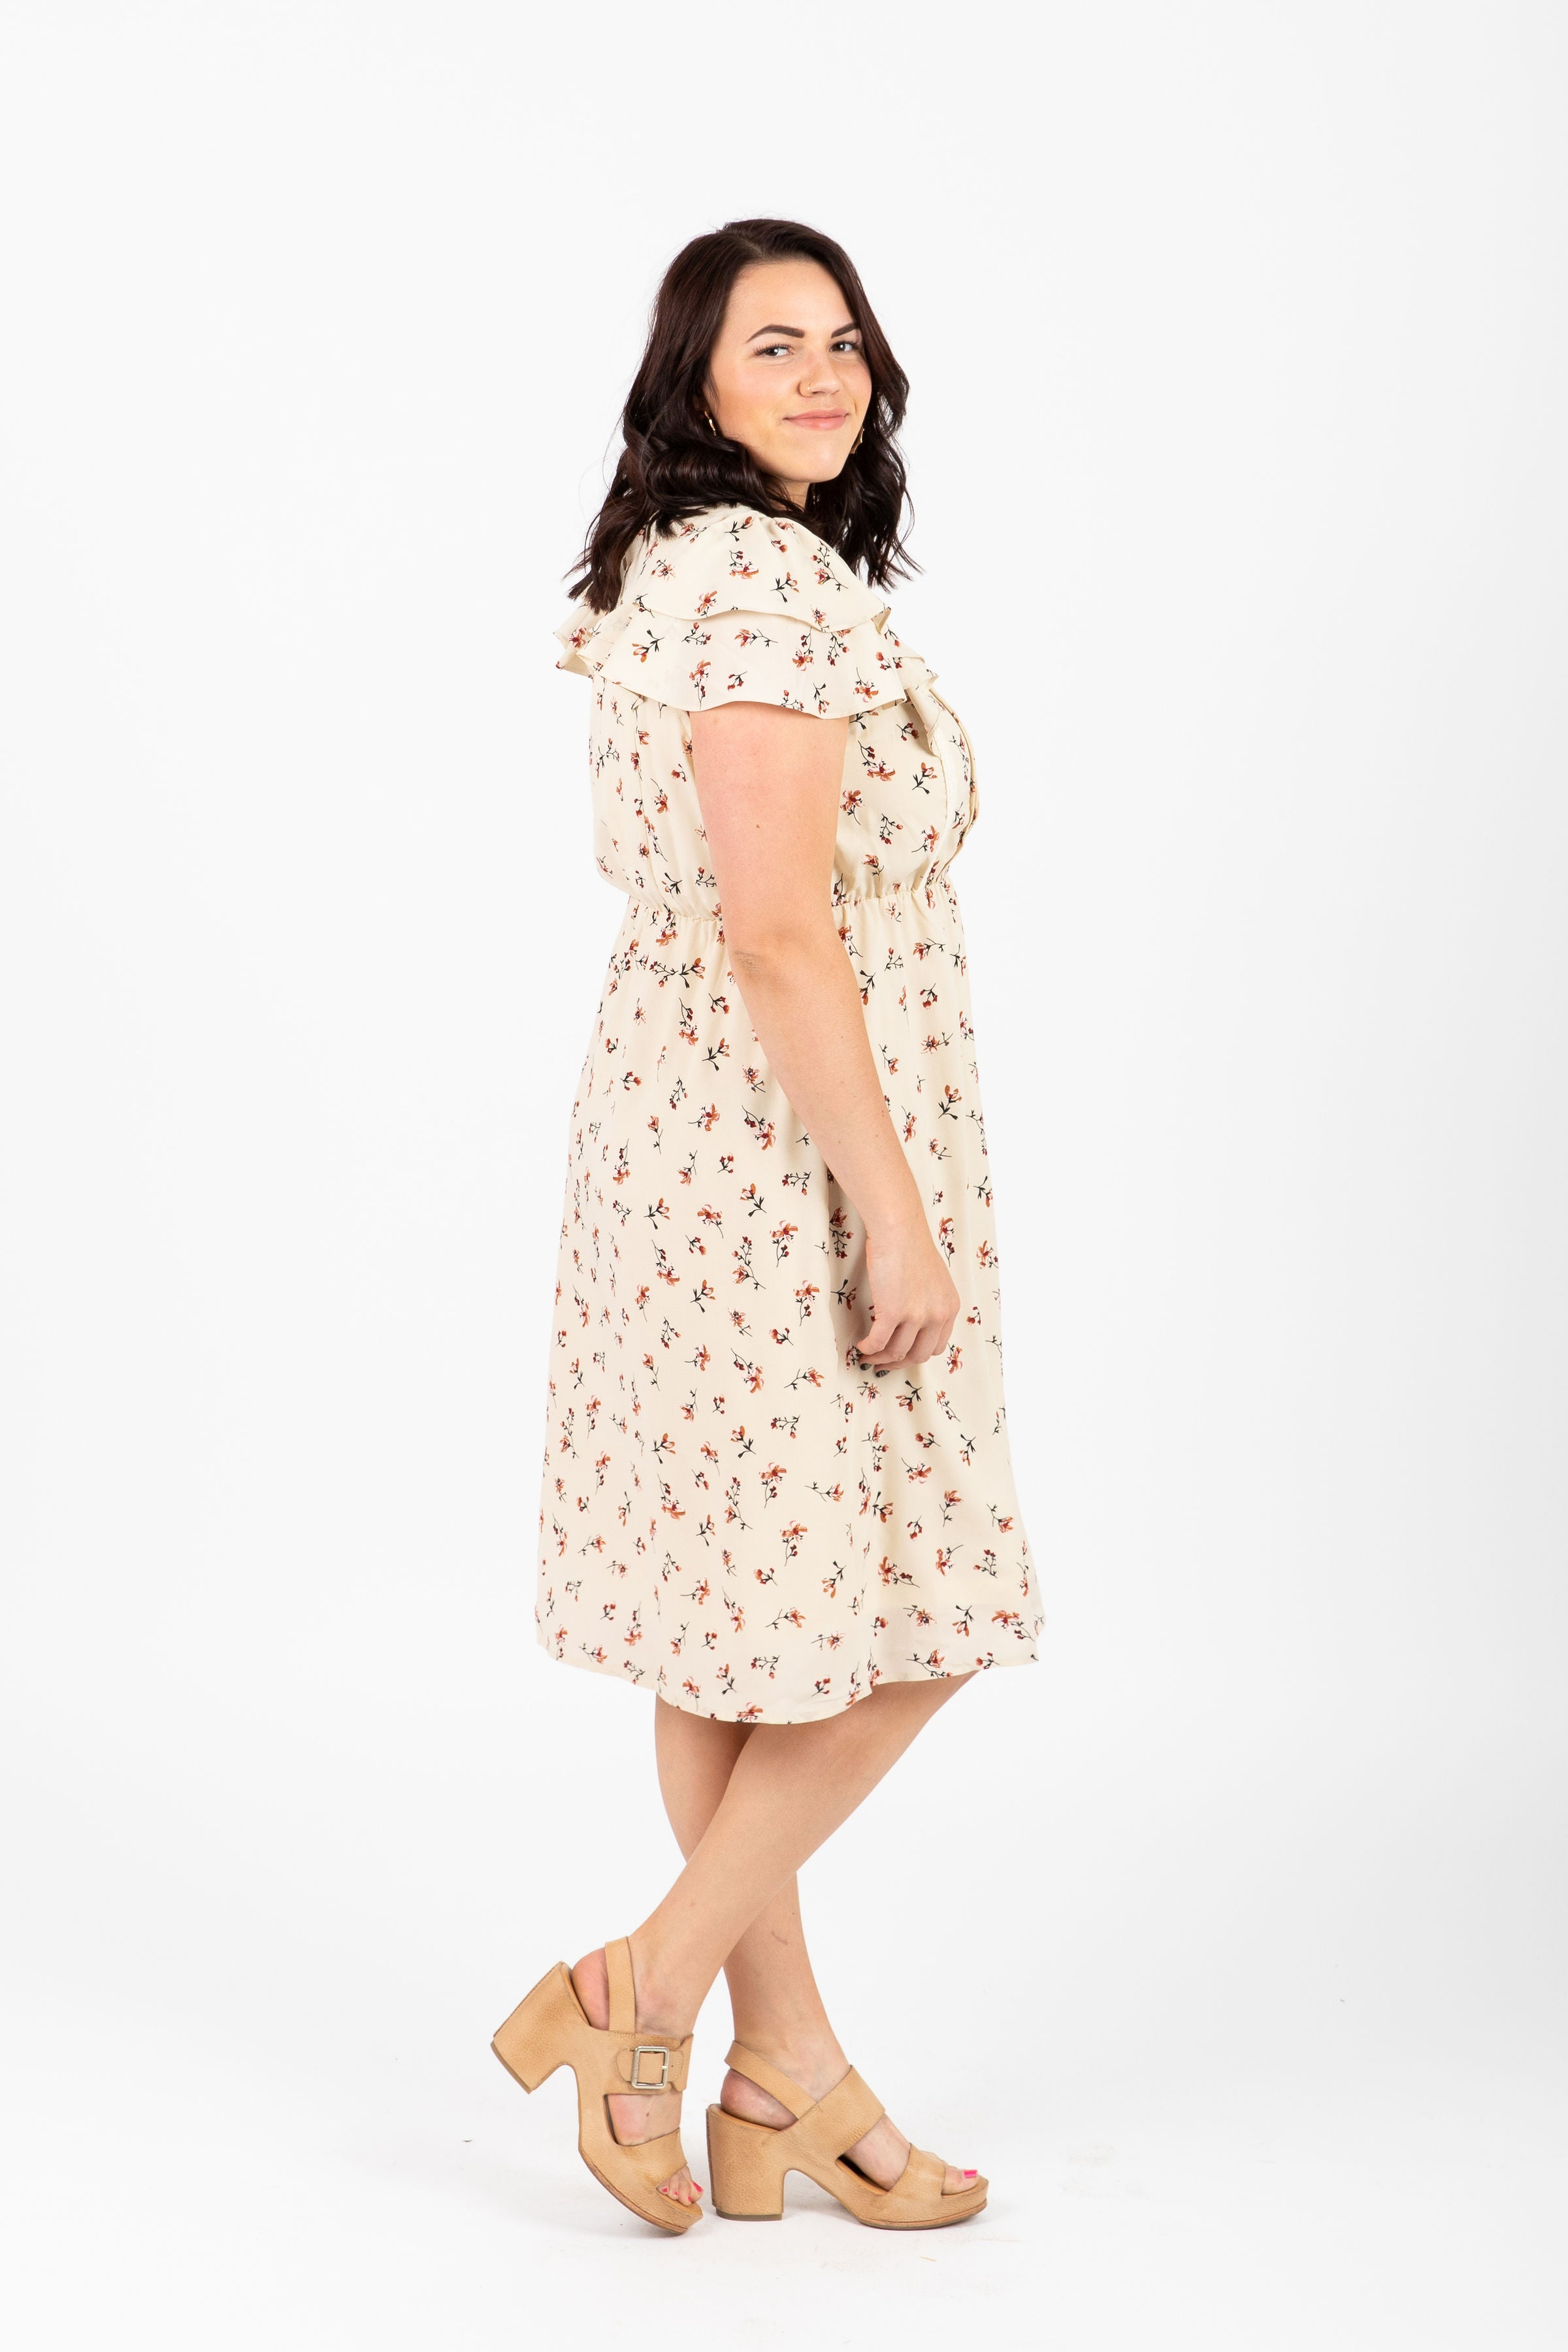 Piper & Scoot: The Impassion Floral Flutter Dress in Cream